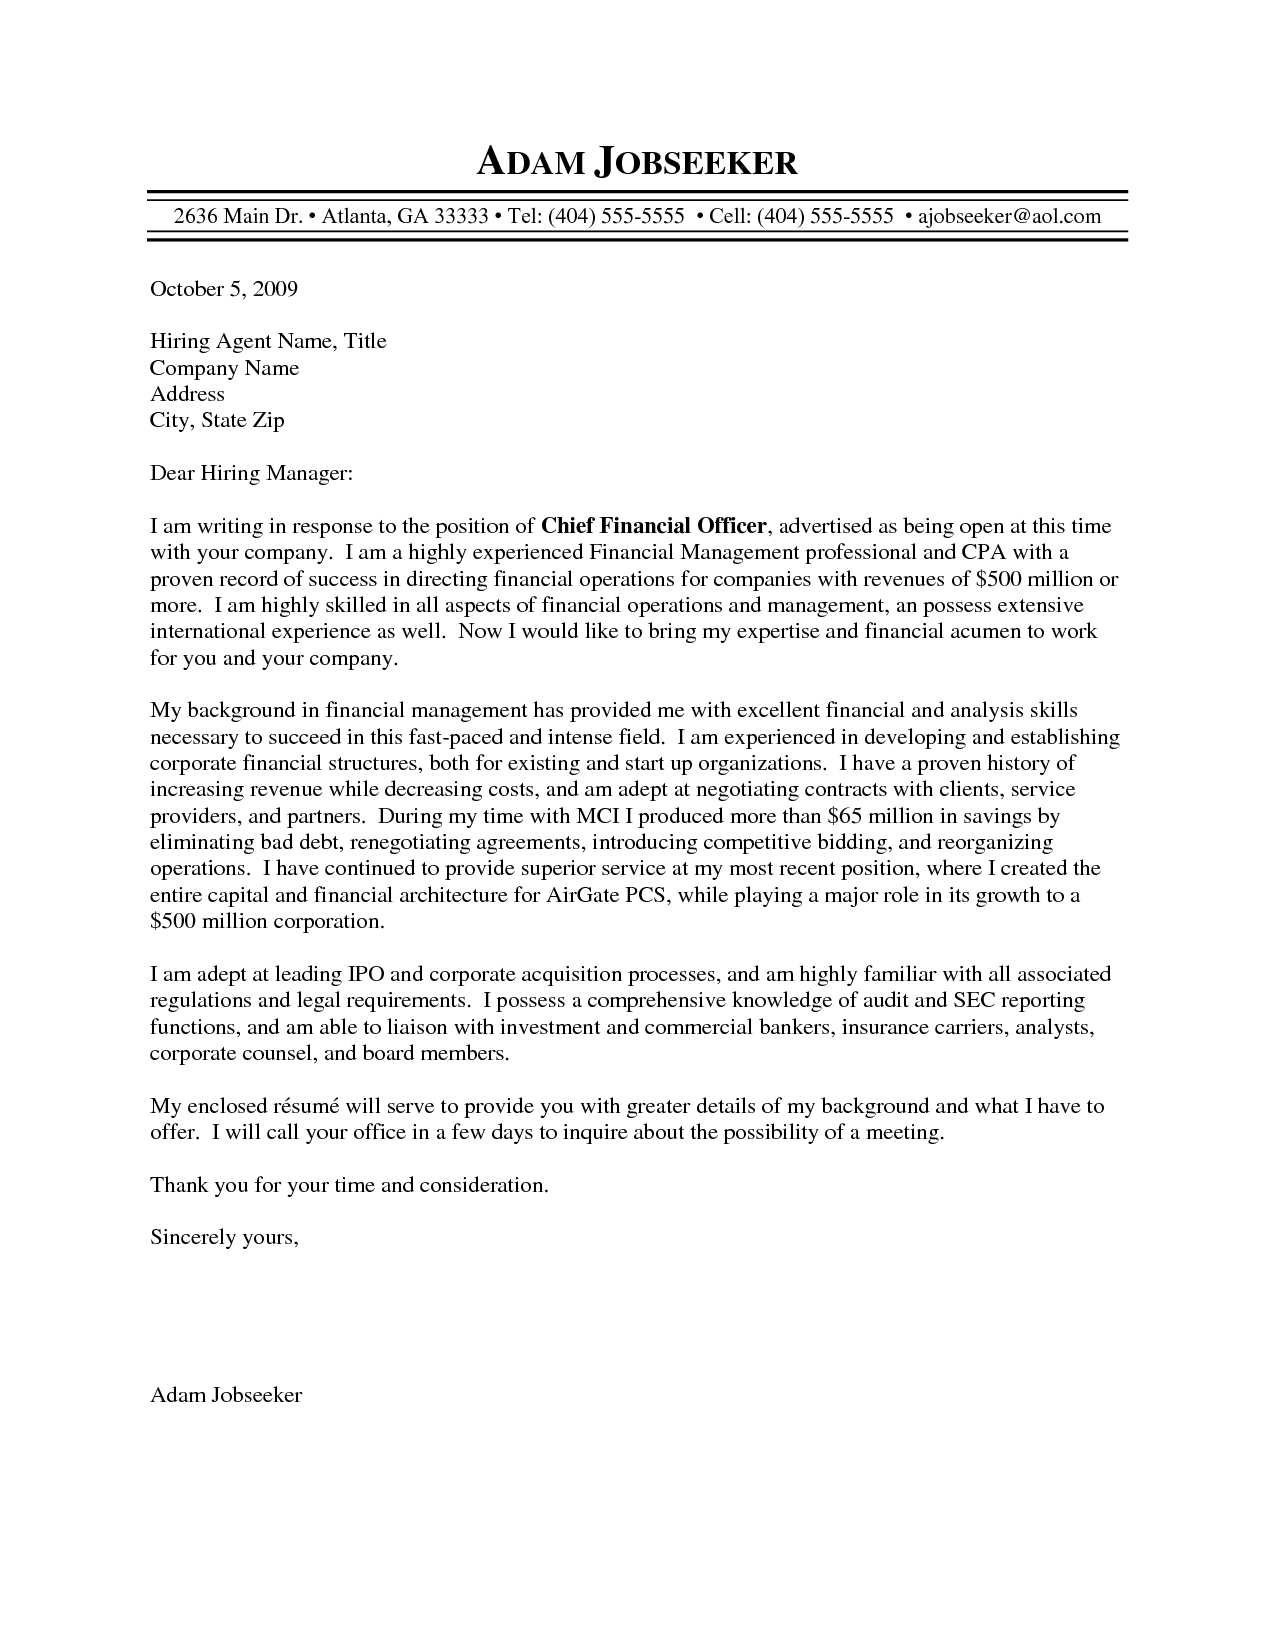 Sample Cover Letter Good Cfo Cover Letter Sample Resume and